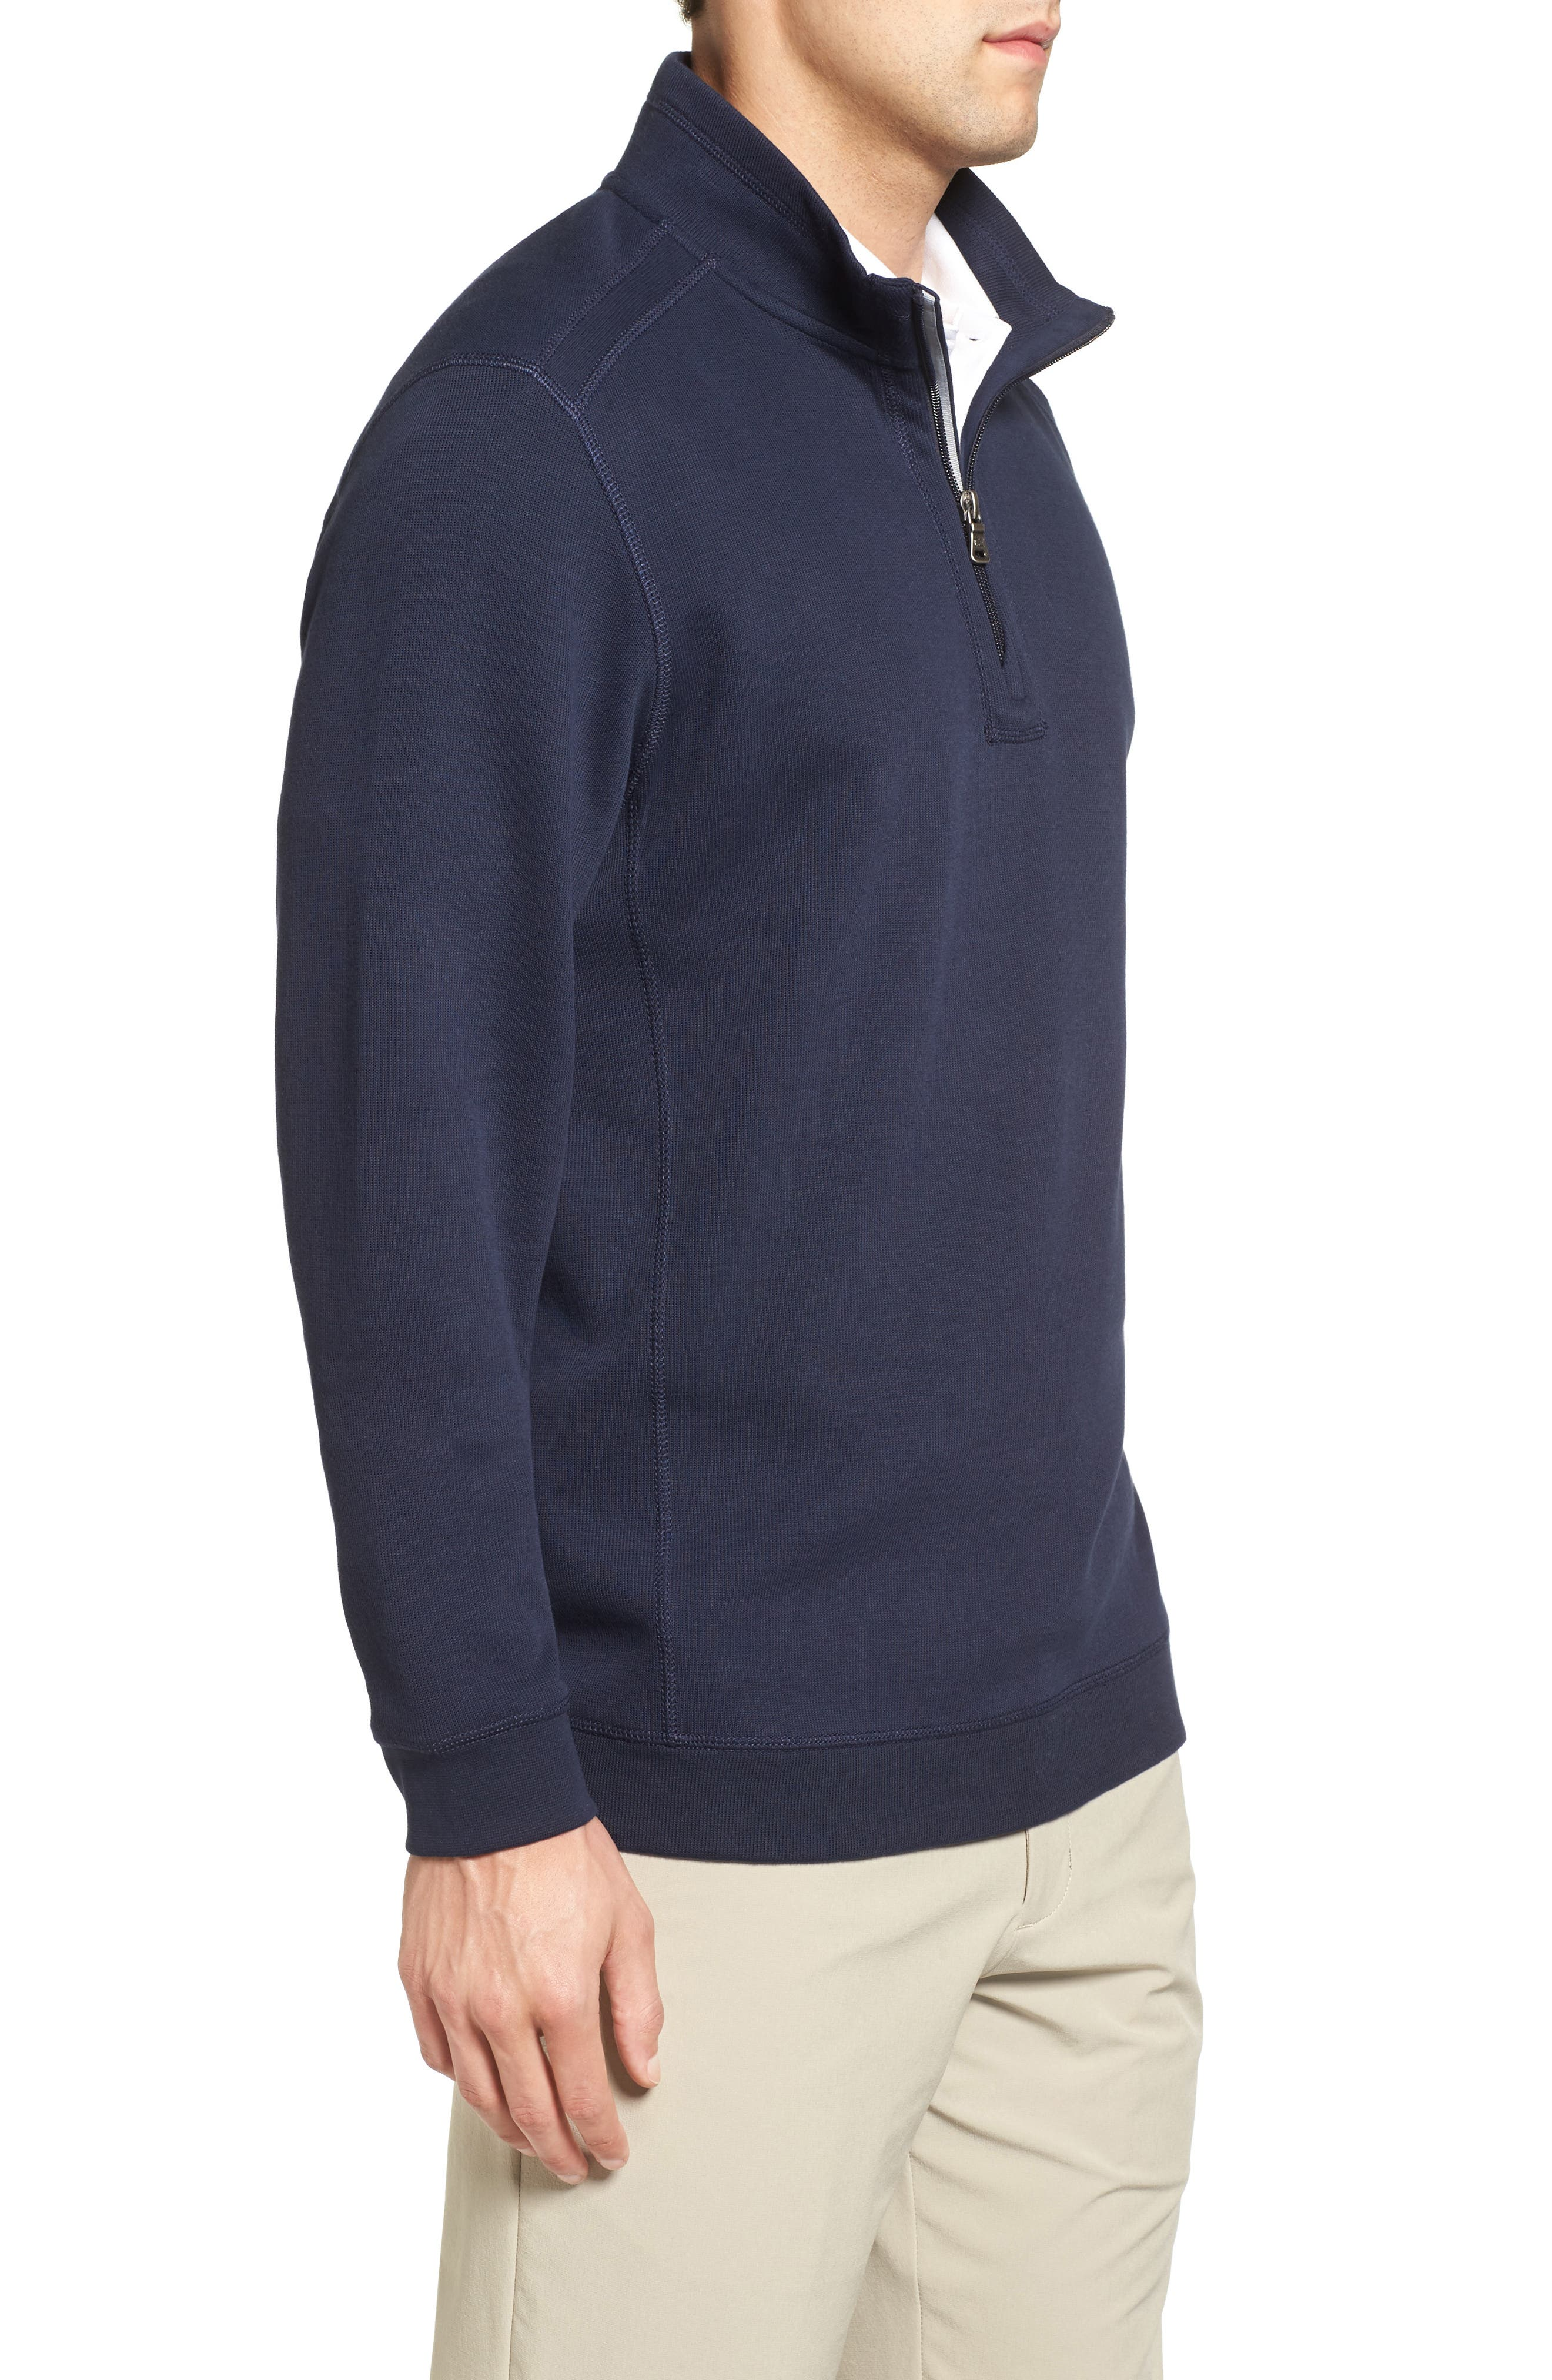 Bayview Quarter Zip Pullover,                             Alternate thumbnail 3, color,                             Liberty Navy